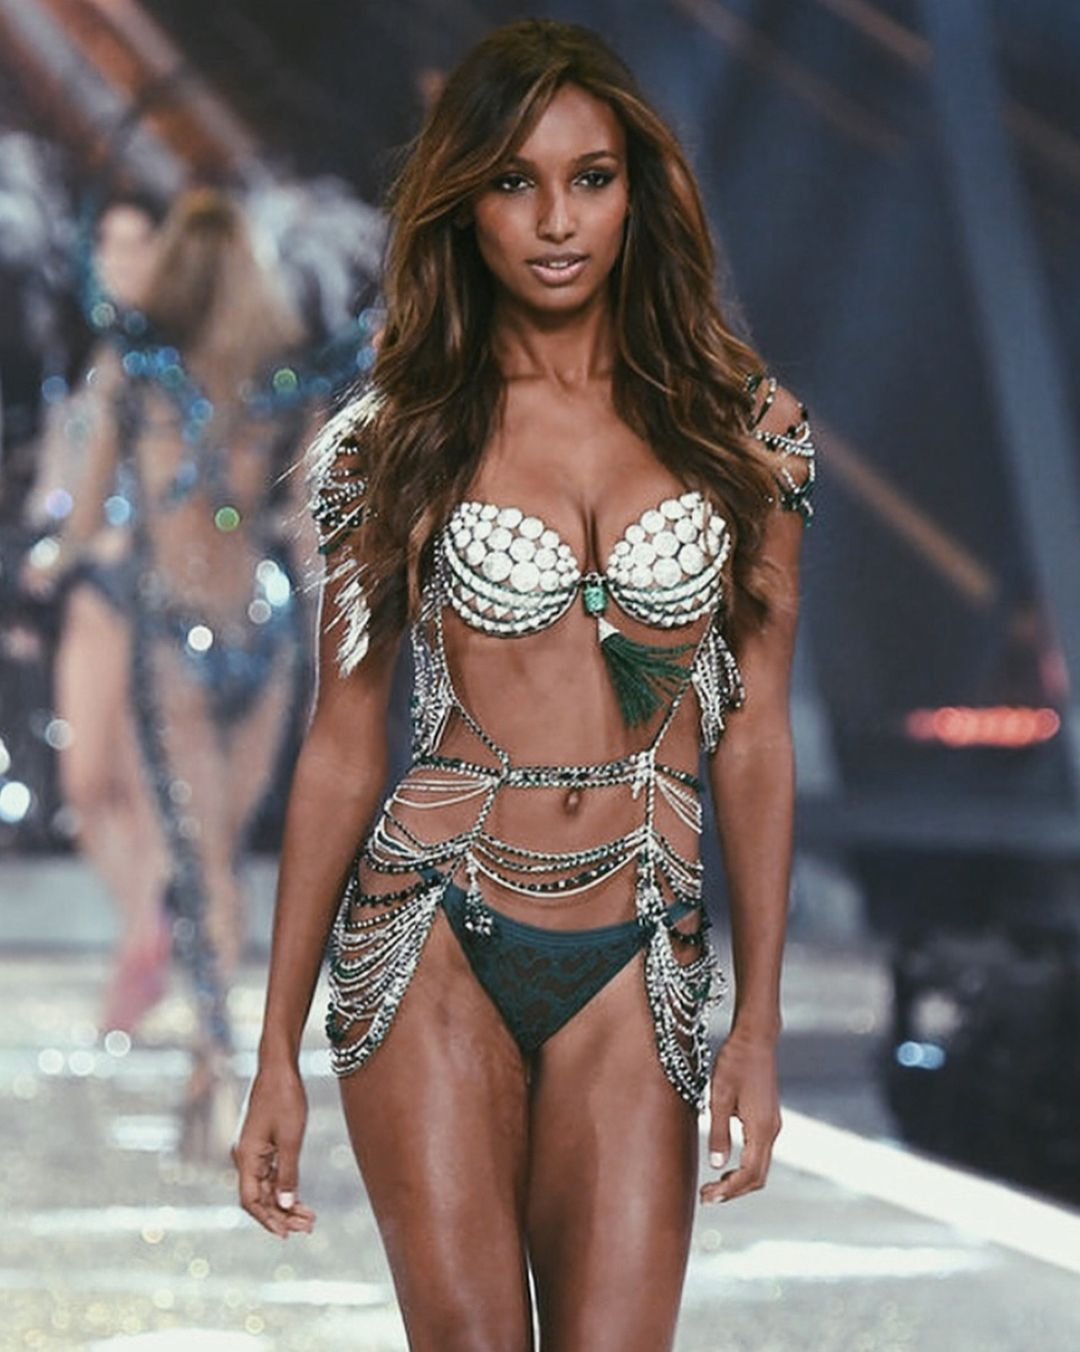 eb39f9b17e Angel  JasmineTookes with her Bright Night Angels fantasy bra. Thoughts on  the design and